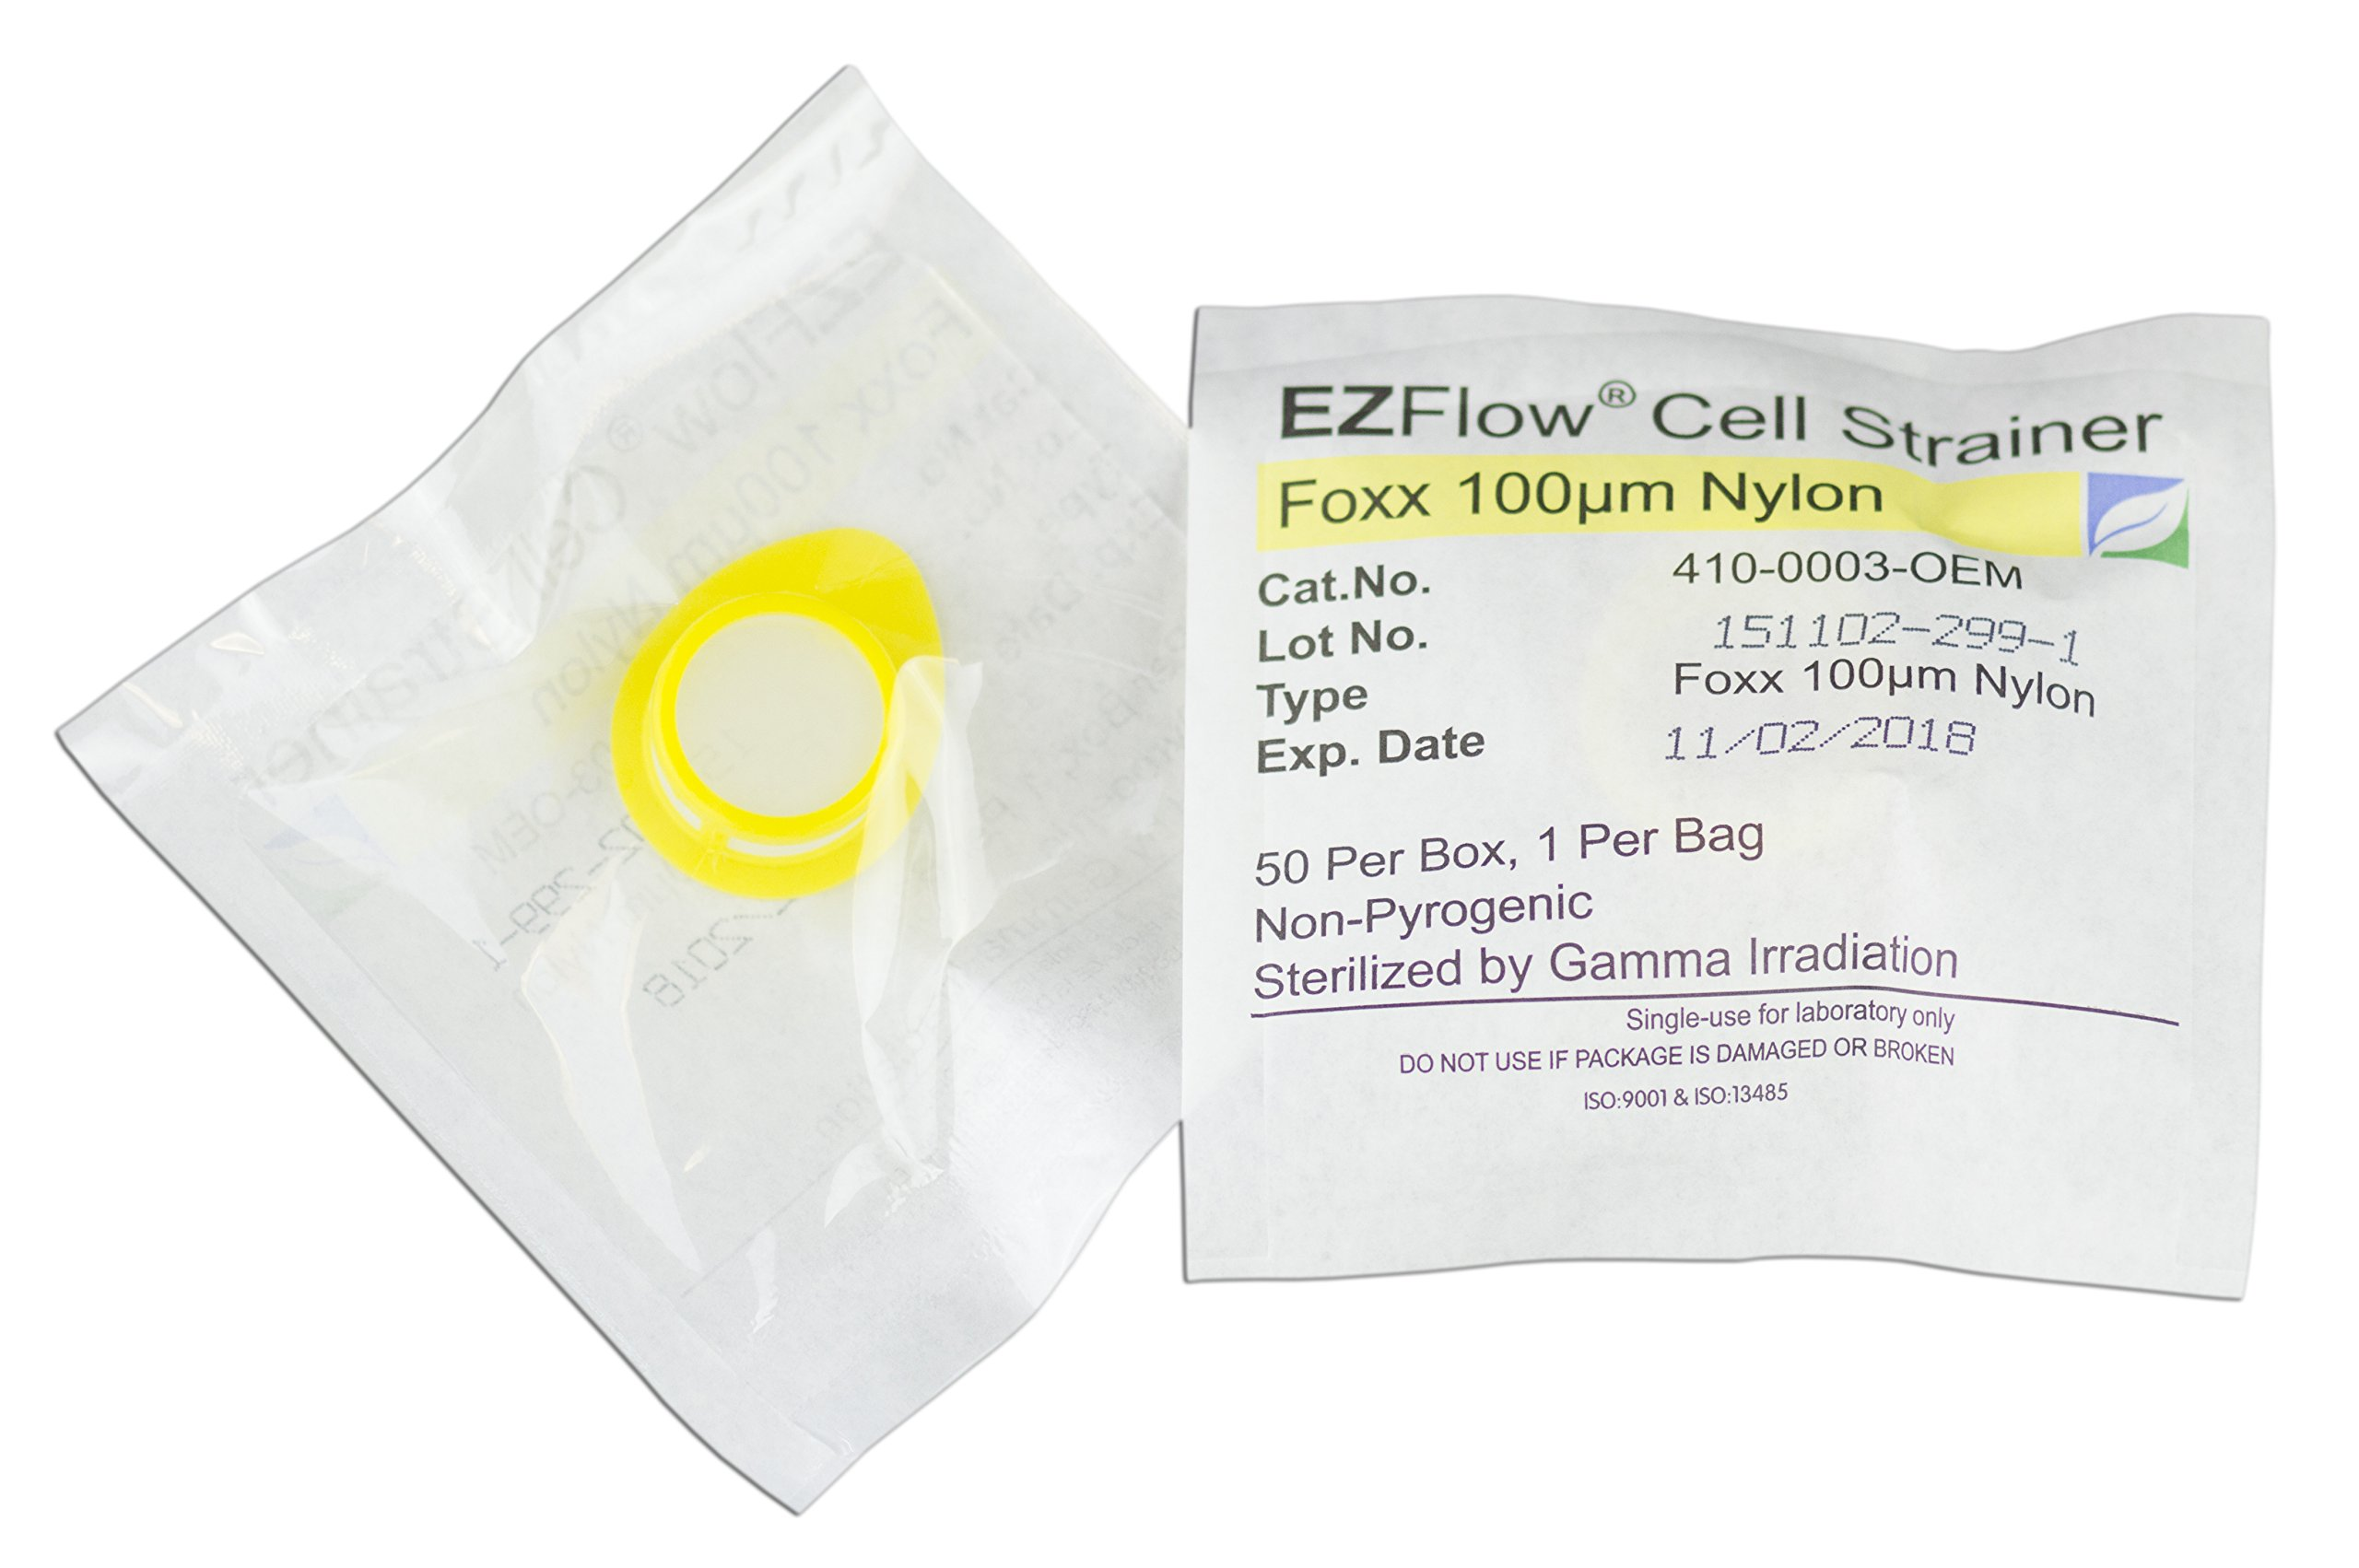 EZFlow Cell Strainer, 100μm, Sterile, Yellow, 50 per Box by Foxx Life Sciences